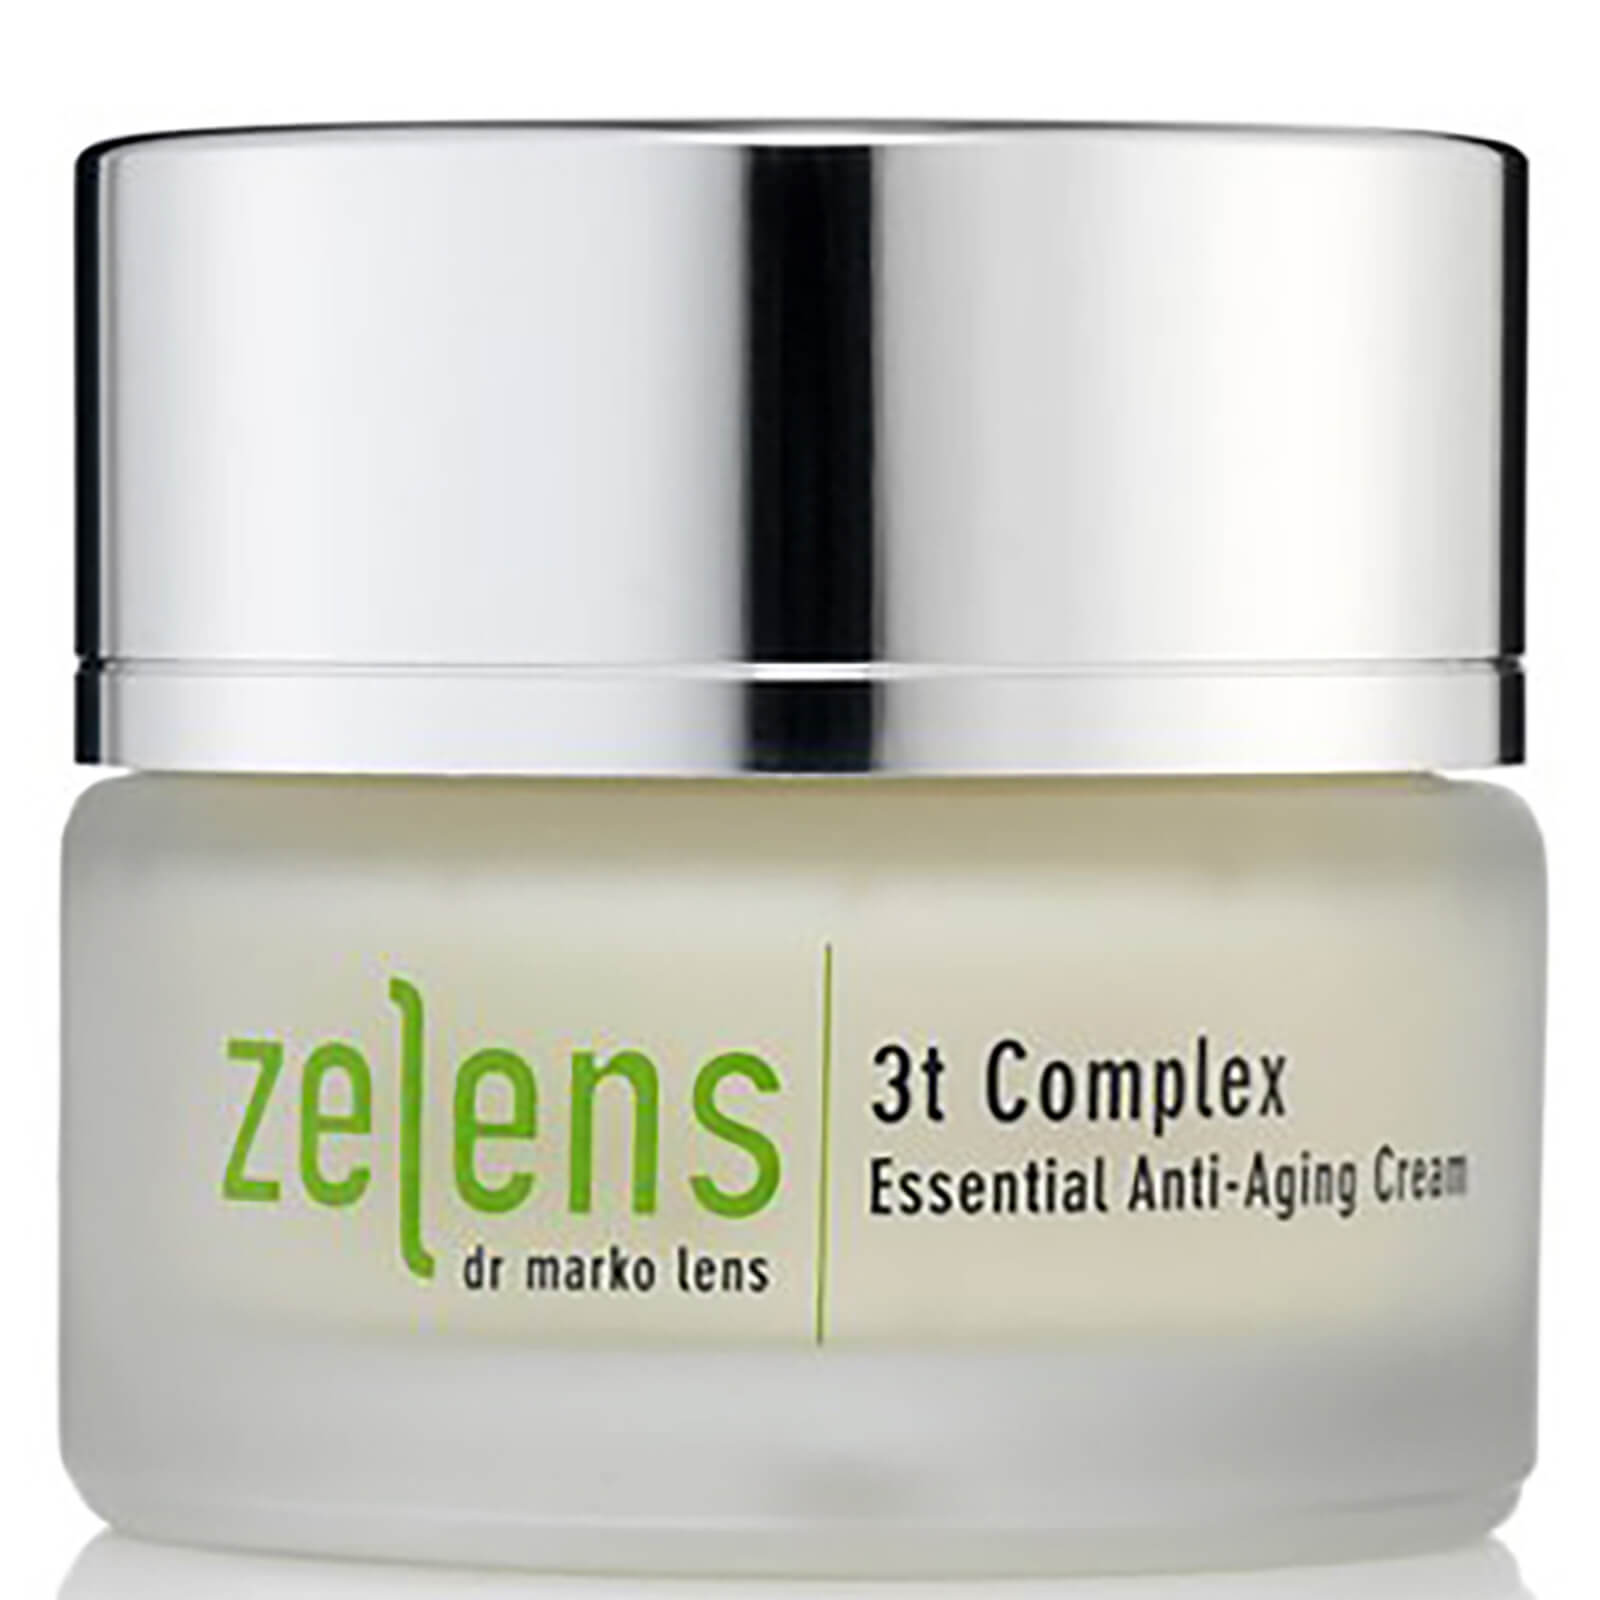 Купить Zelens 3T Complex Essential Anti-Aging Cream 50ml